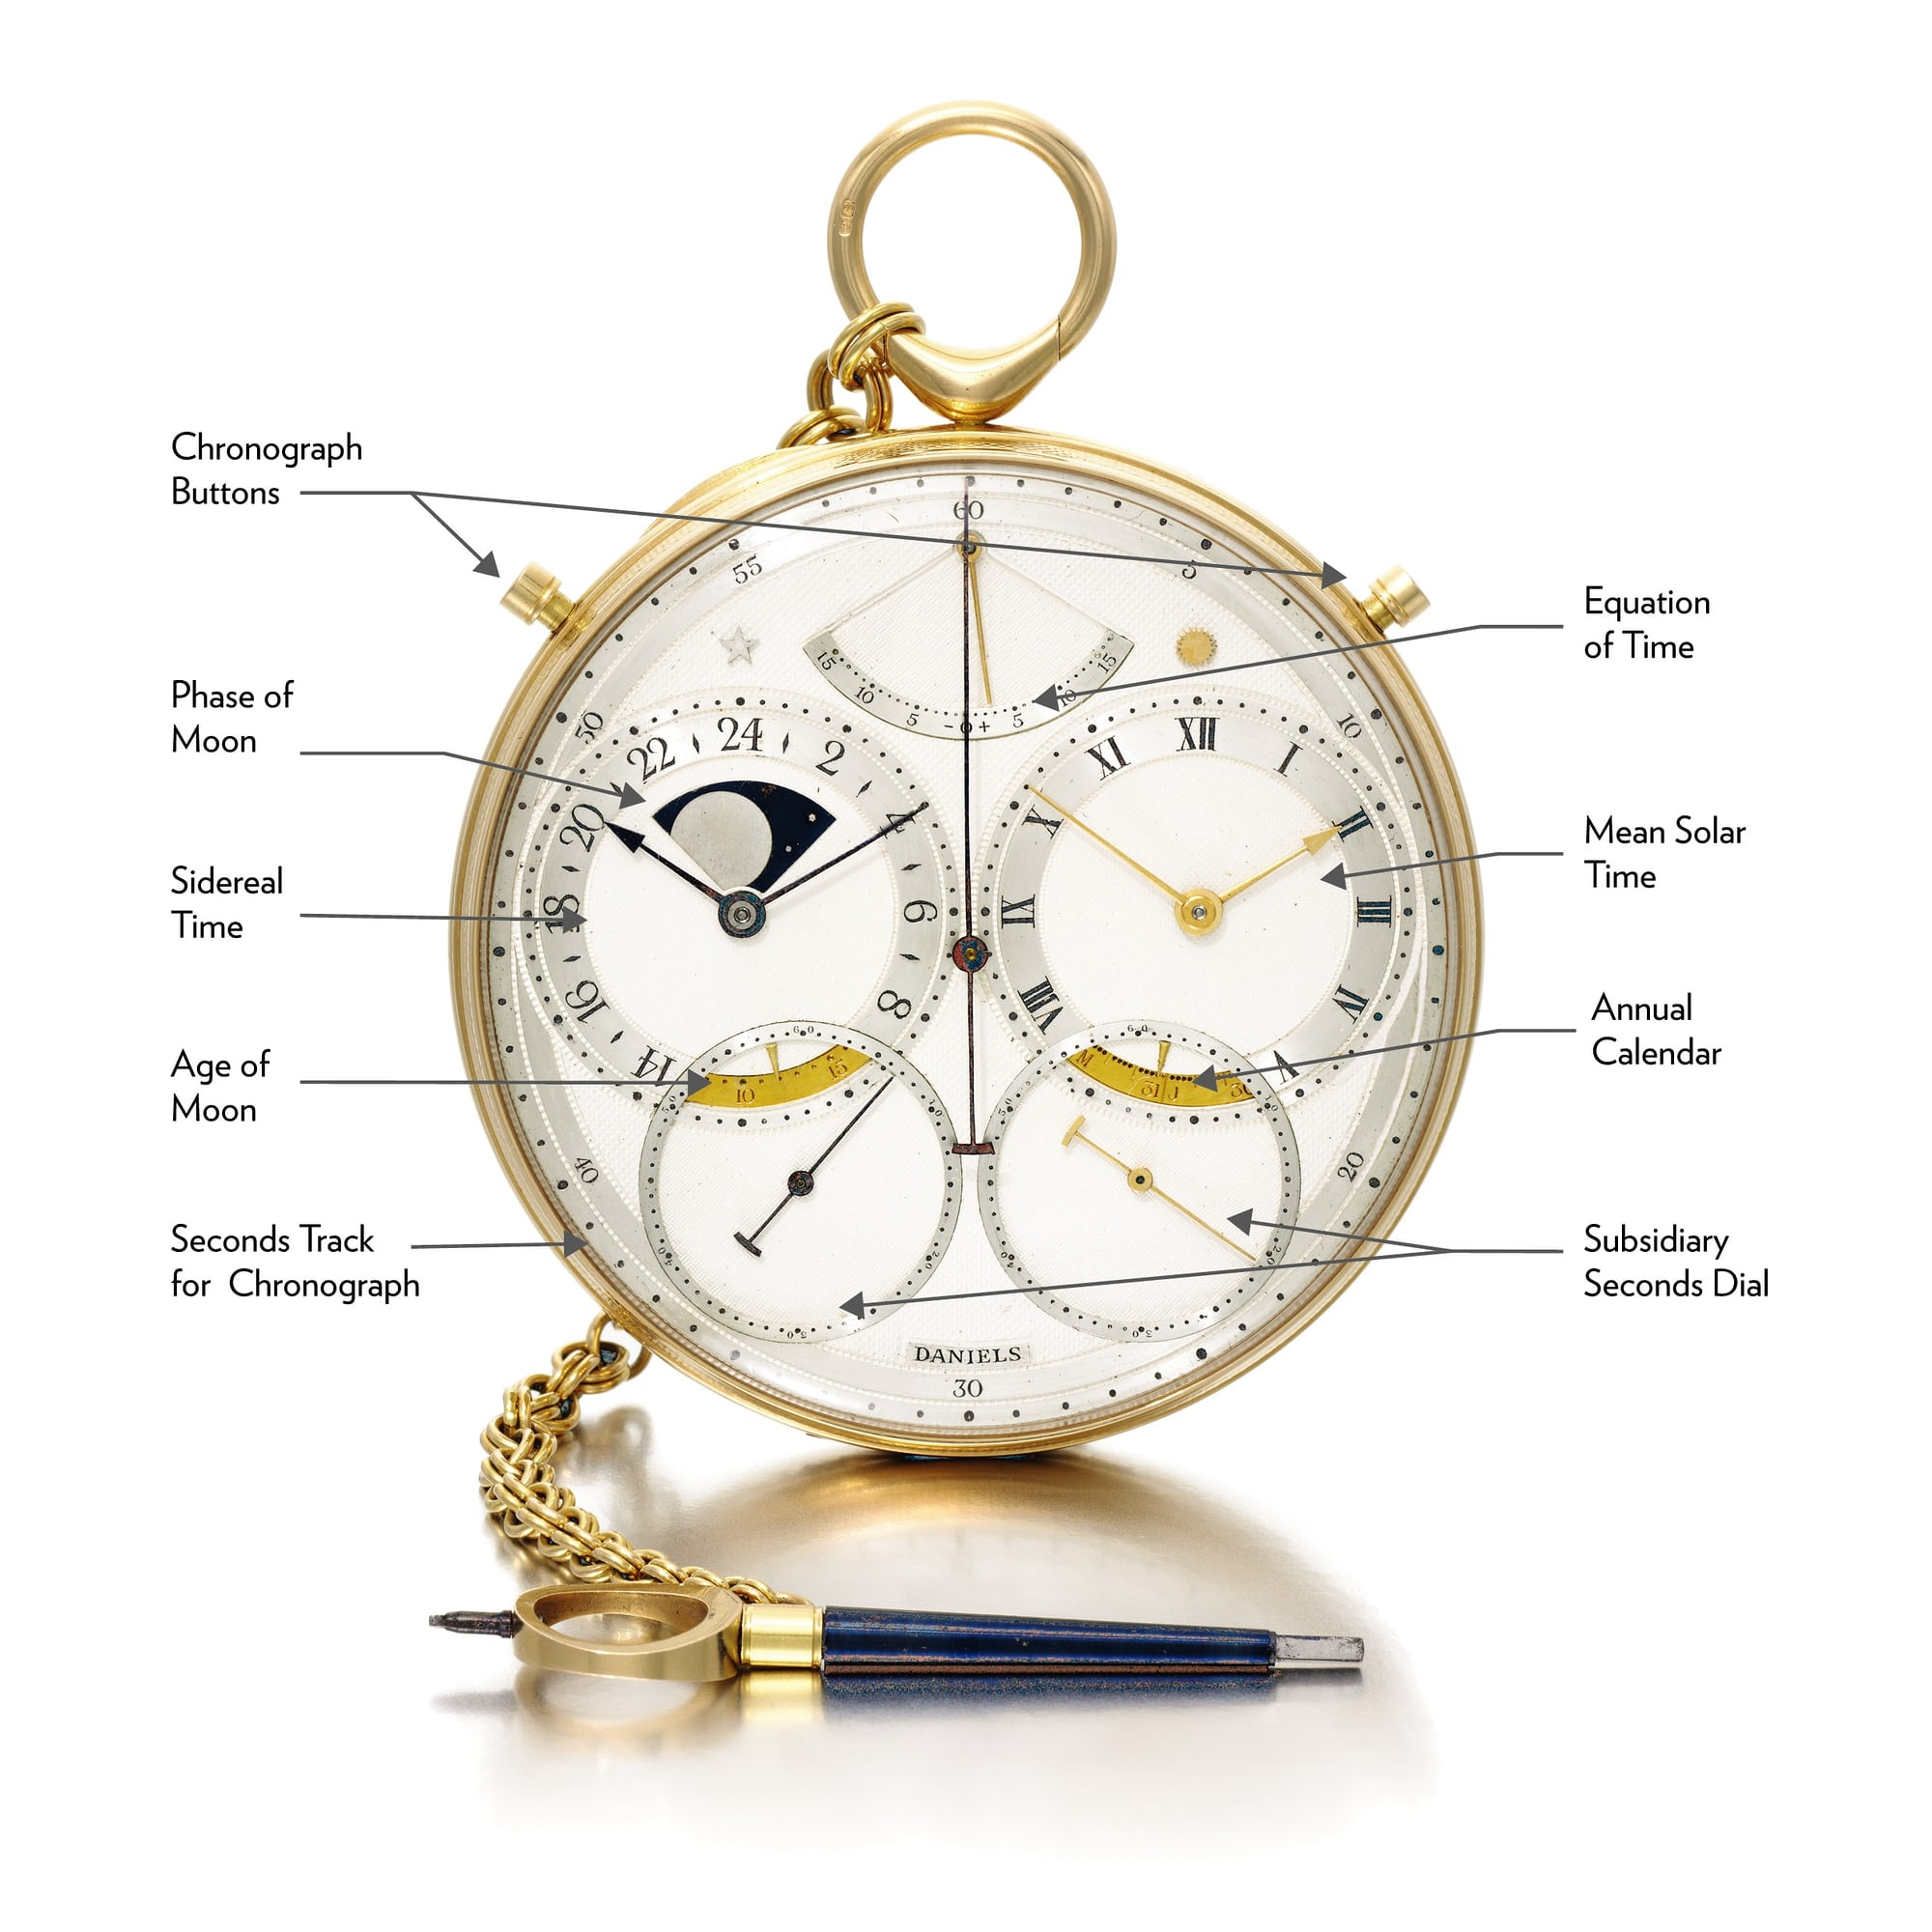 auction report: sotheby's to offer the daniels 'space traveller' watch, september 19th in london Auction Report: Sotheby's To Offer The Daniels 'Space Traveller' Watch, September 19th In London Daniels   SPACE TRAVELLERS WATCH functions